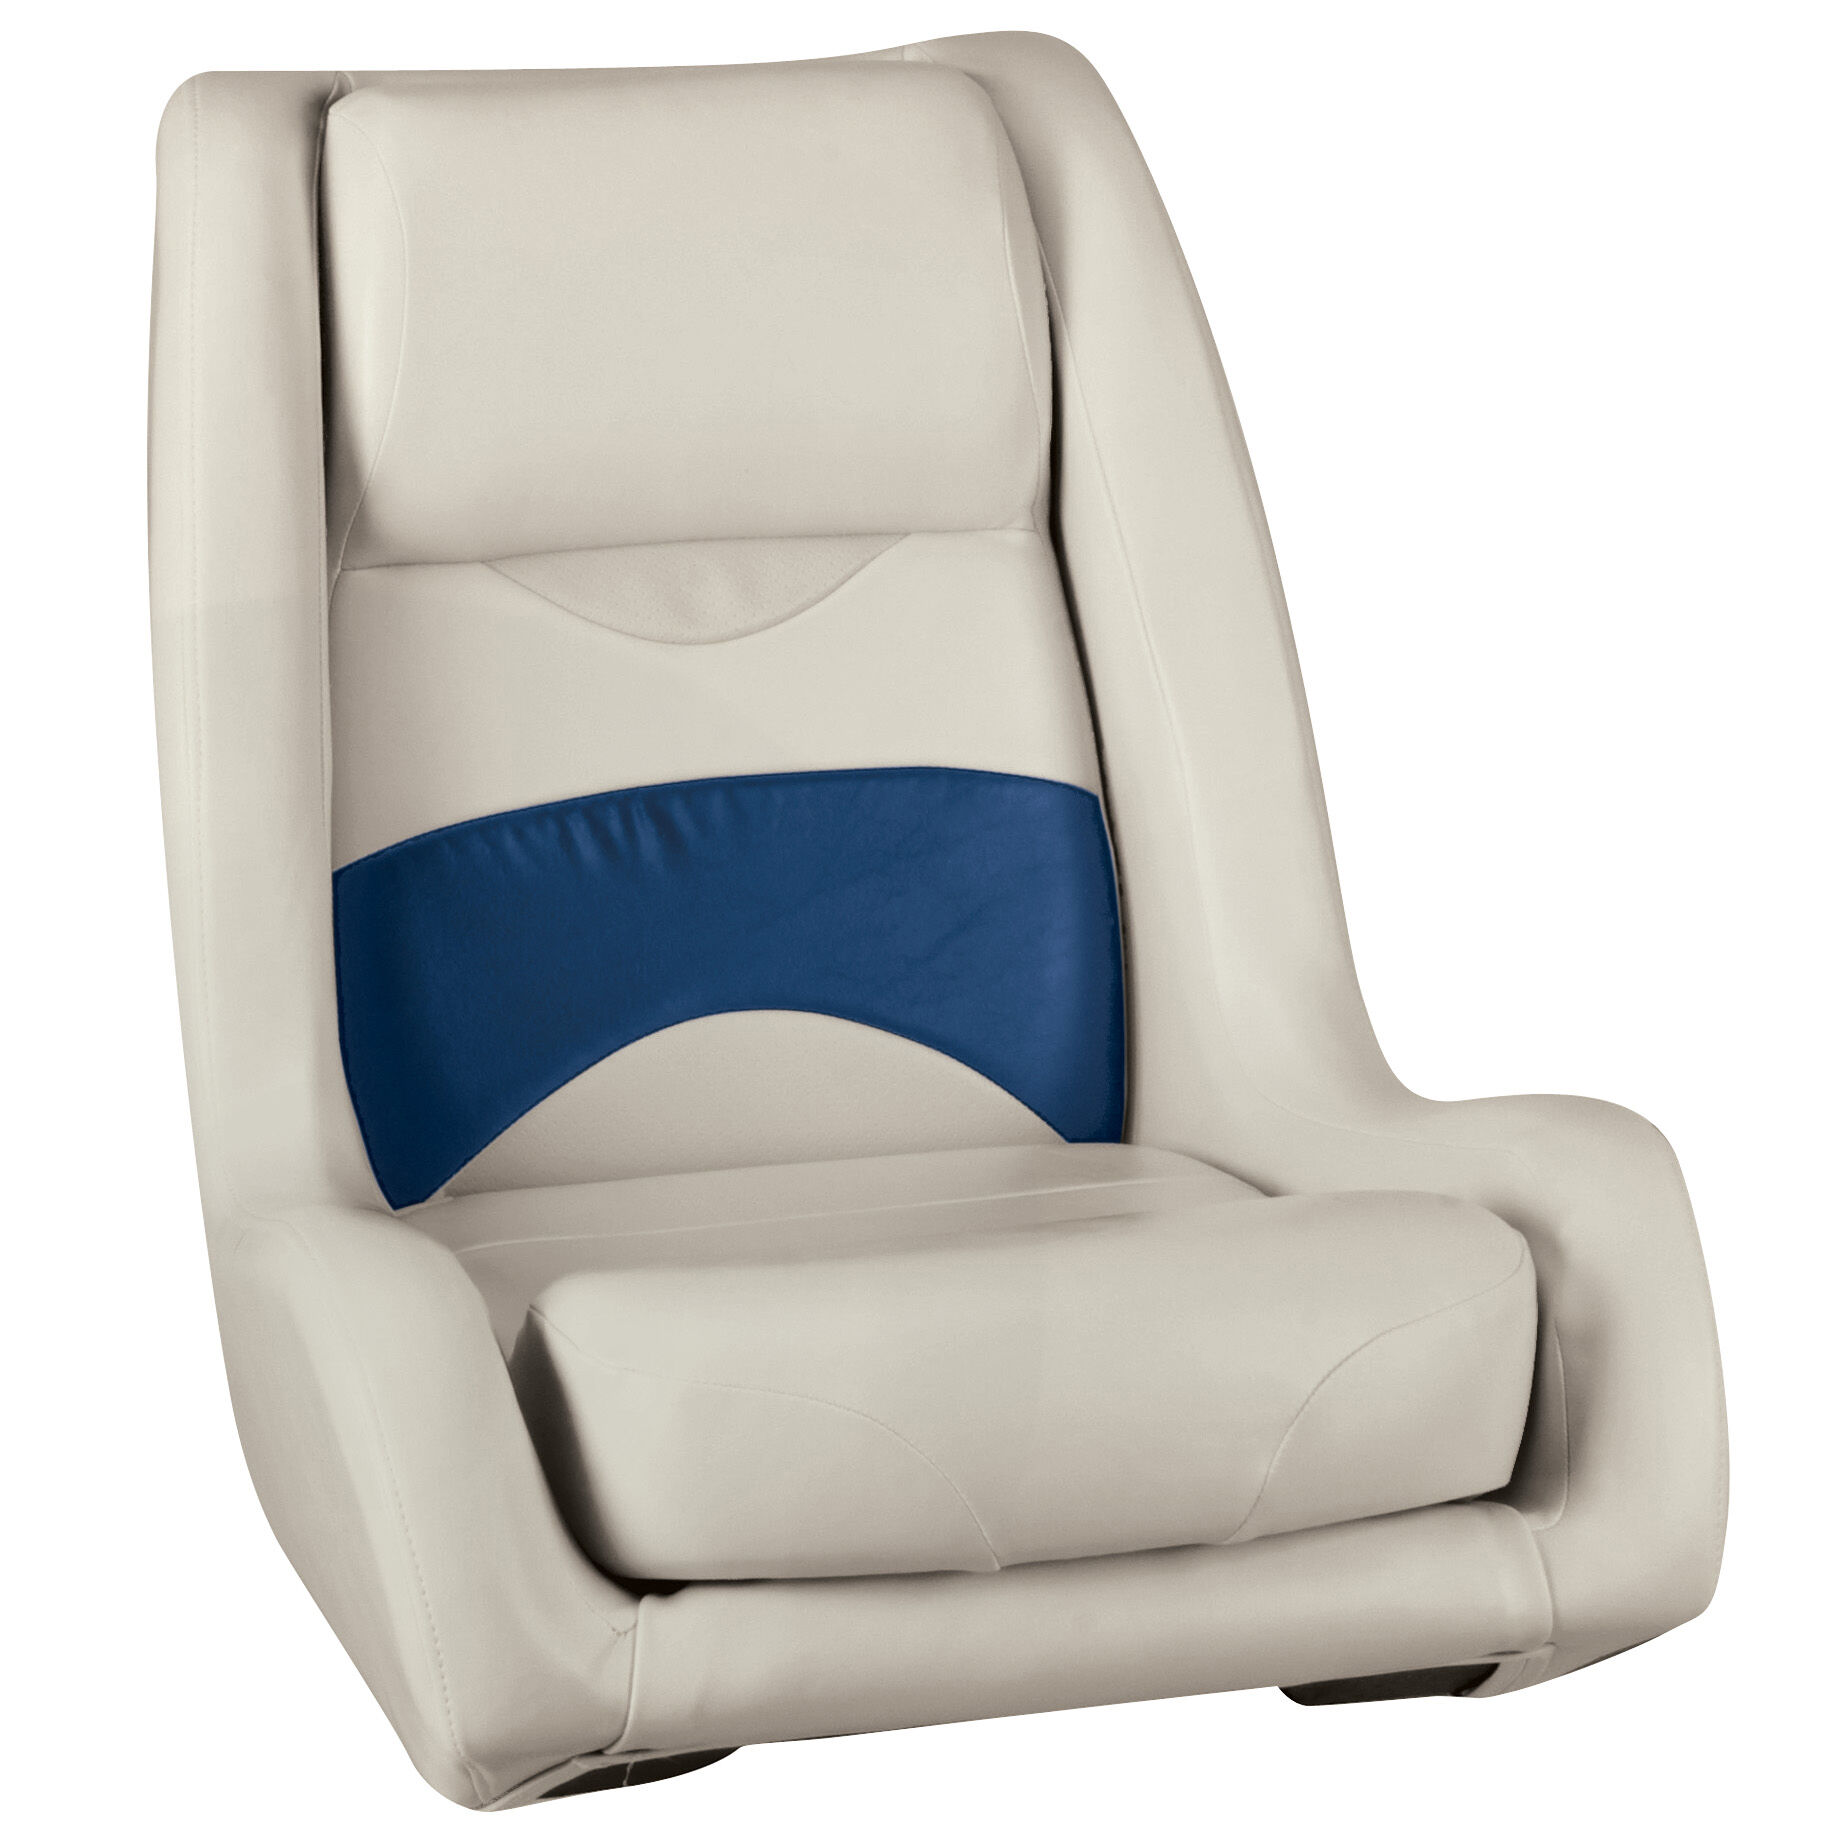 SWIVEL CHAIR FOR THE PONTOON COMFORTABLE ROTARY FISHING RUBBER BOAT SEAT PARTS